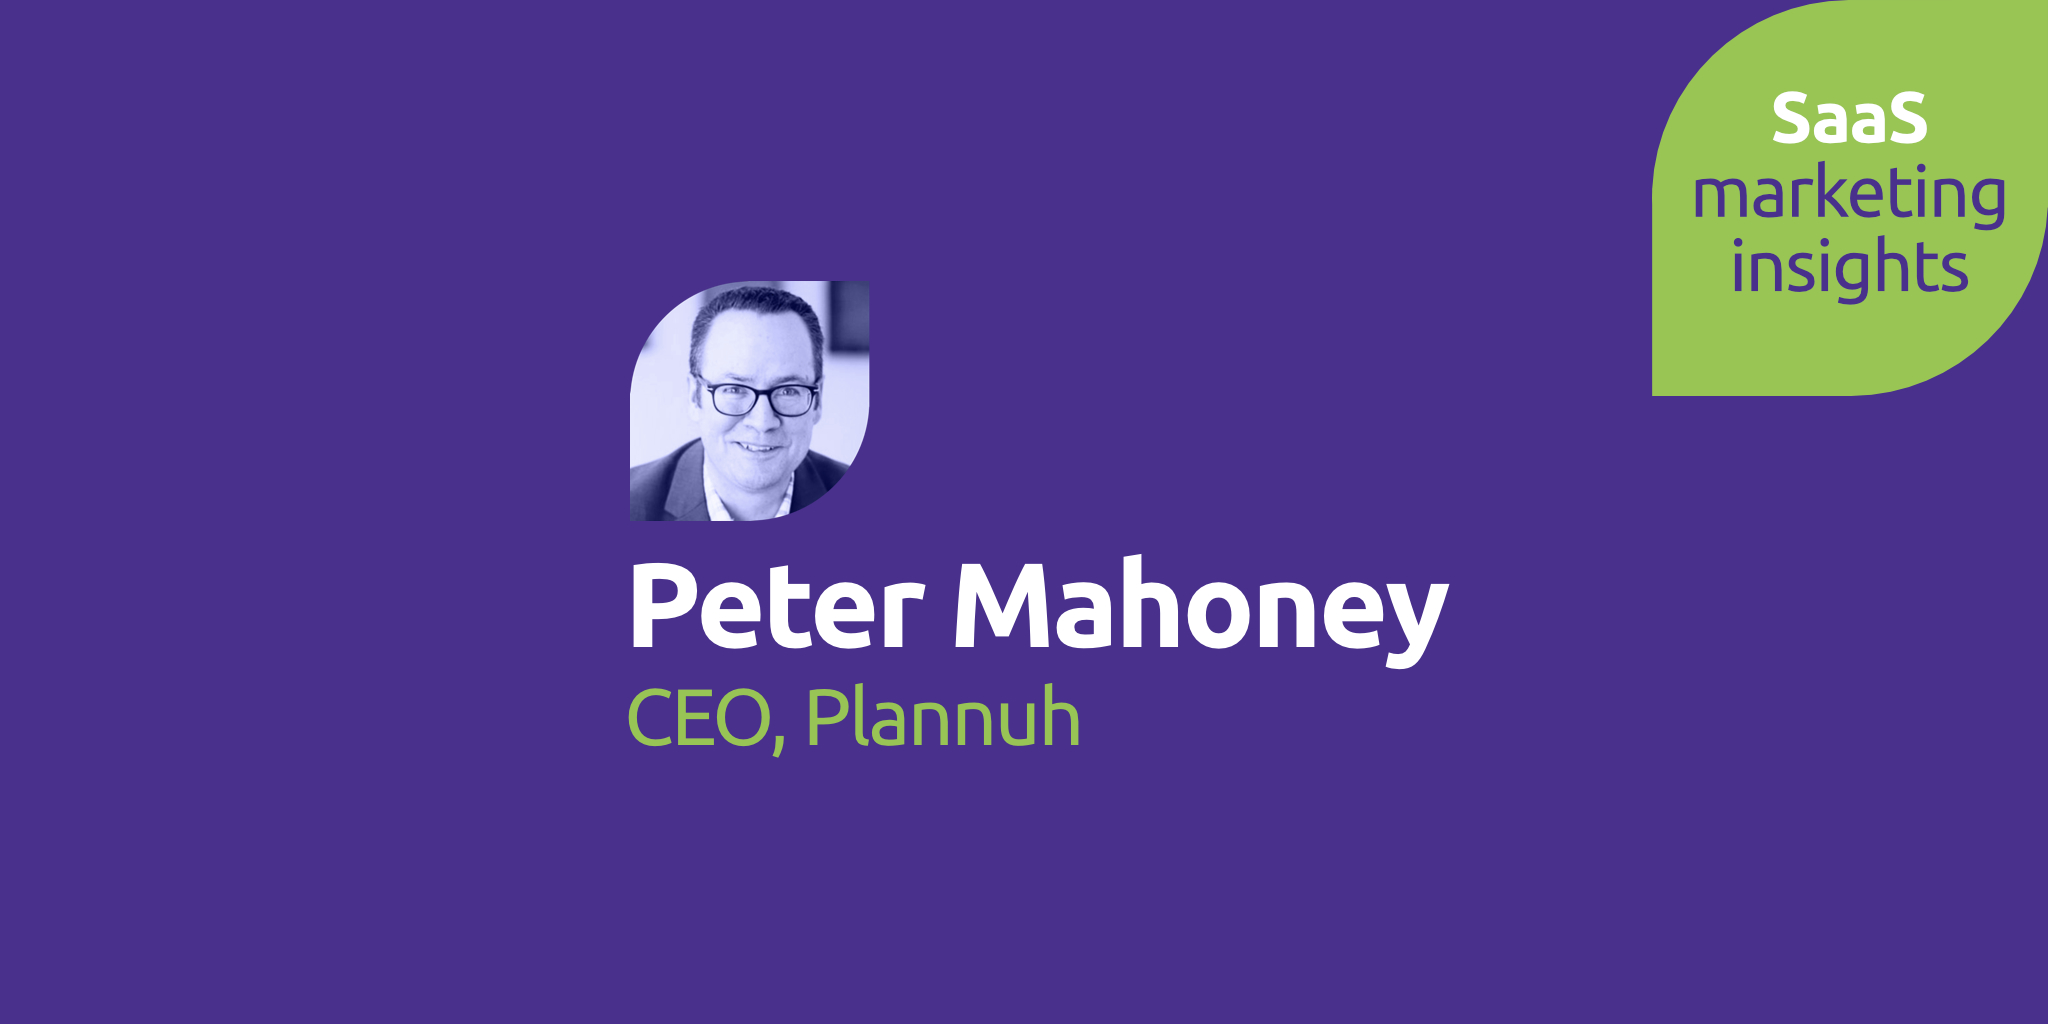 Peter Mahoney, Plannuh